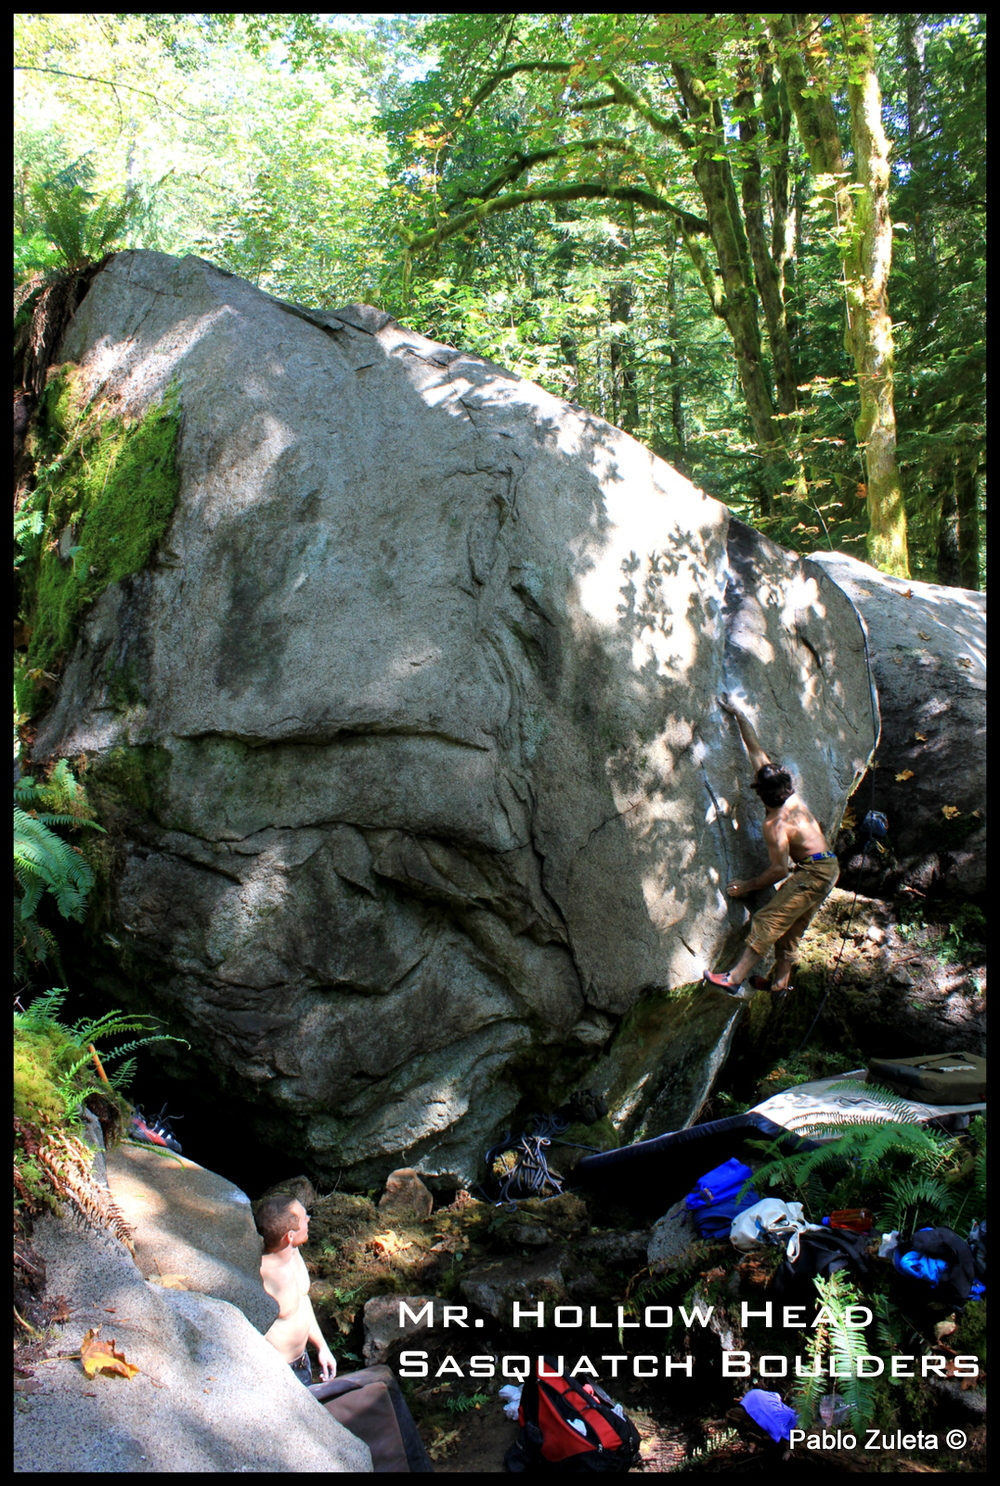 Pablo Zuleta putting up the FA for Mr. Hollow Head -V4  (Mr. Hollow Head is an action figure at the Sasquatch Boulders made of drift wood)